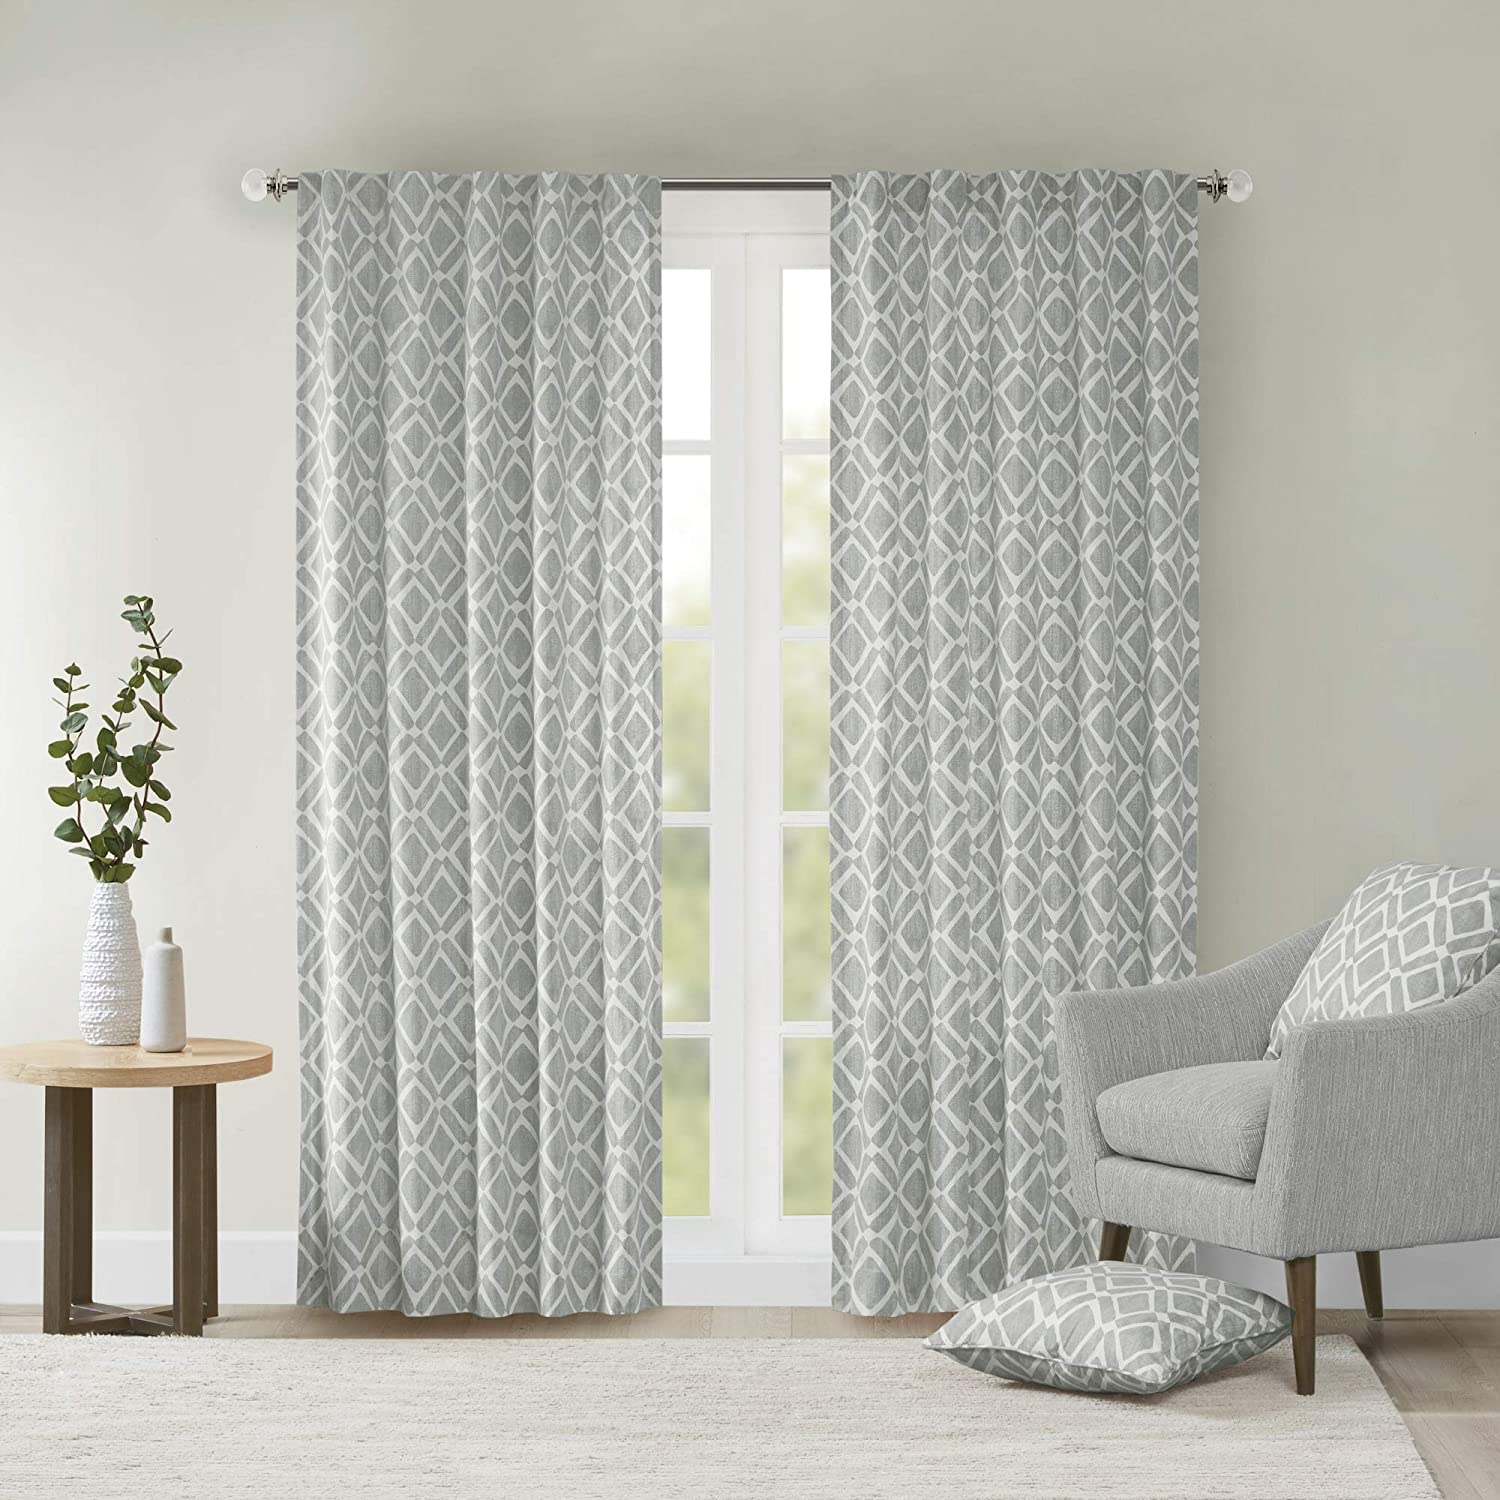 Amazon Com Grey Curtains For Living Room Modern Contemporary Fabric Window Curtains For Bedroom Delray Diamond Print Rod Pocket Modern Window Curtains 42x84 1 Panel Pack Home Kitchen